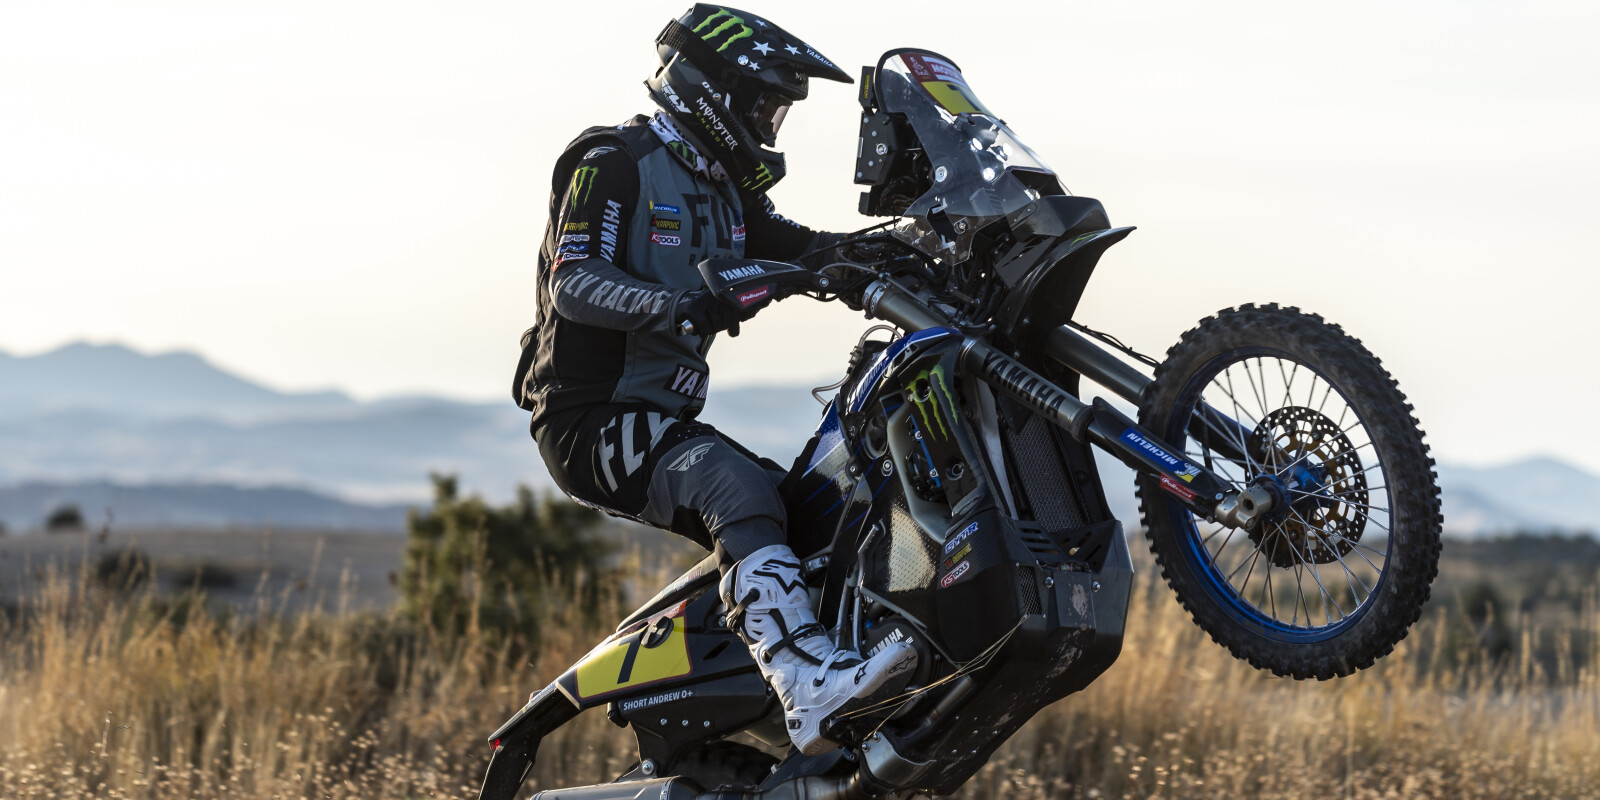 2021 Monster Energy Yamaha Rally Official Team - Pre 2021 Dakar PR Images